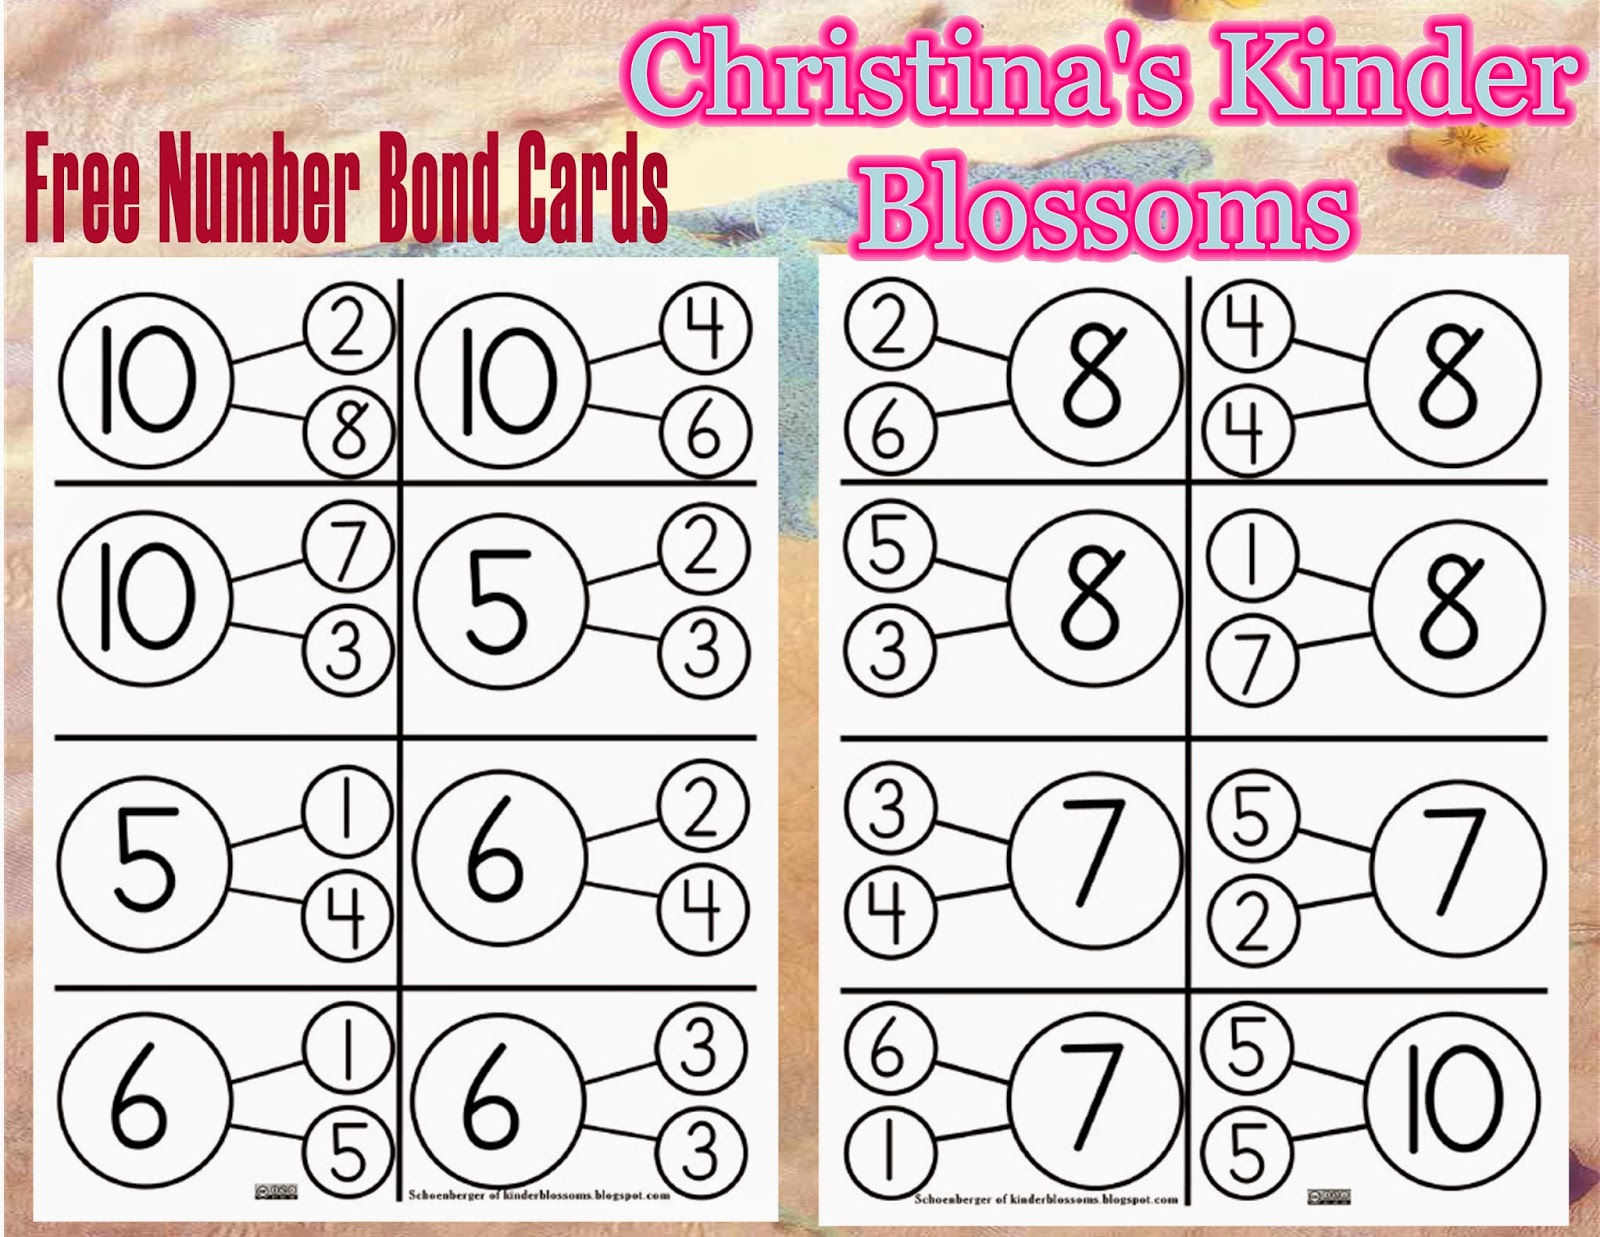 Christina S Kinder Blossoms July